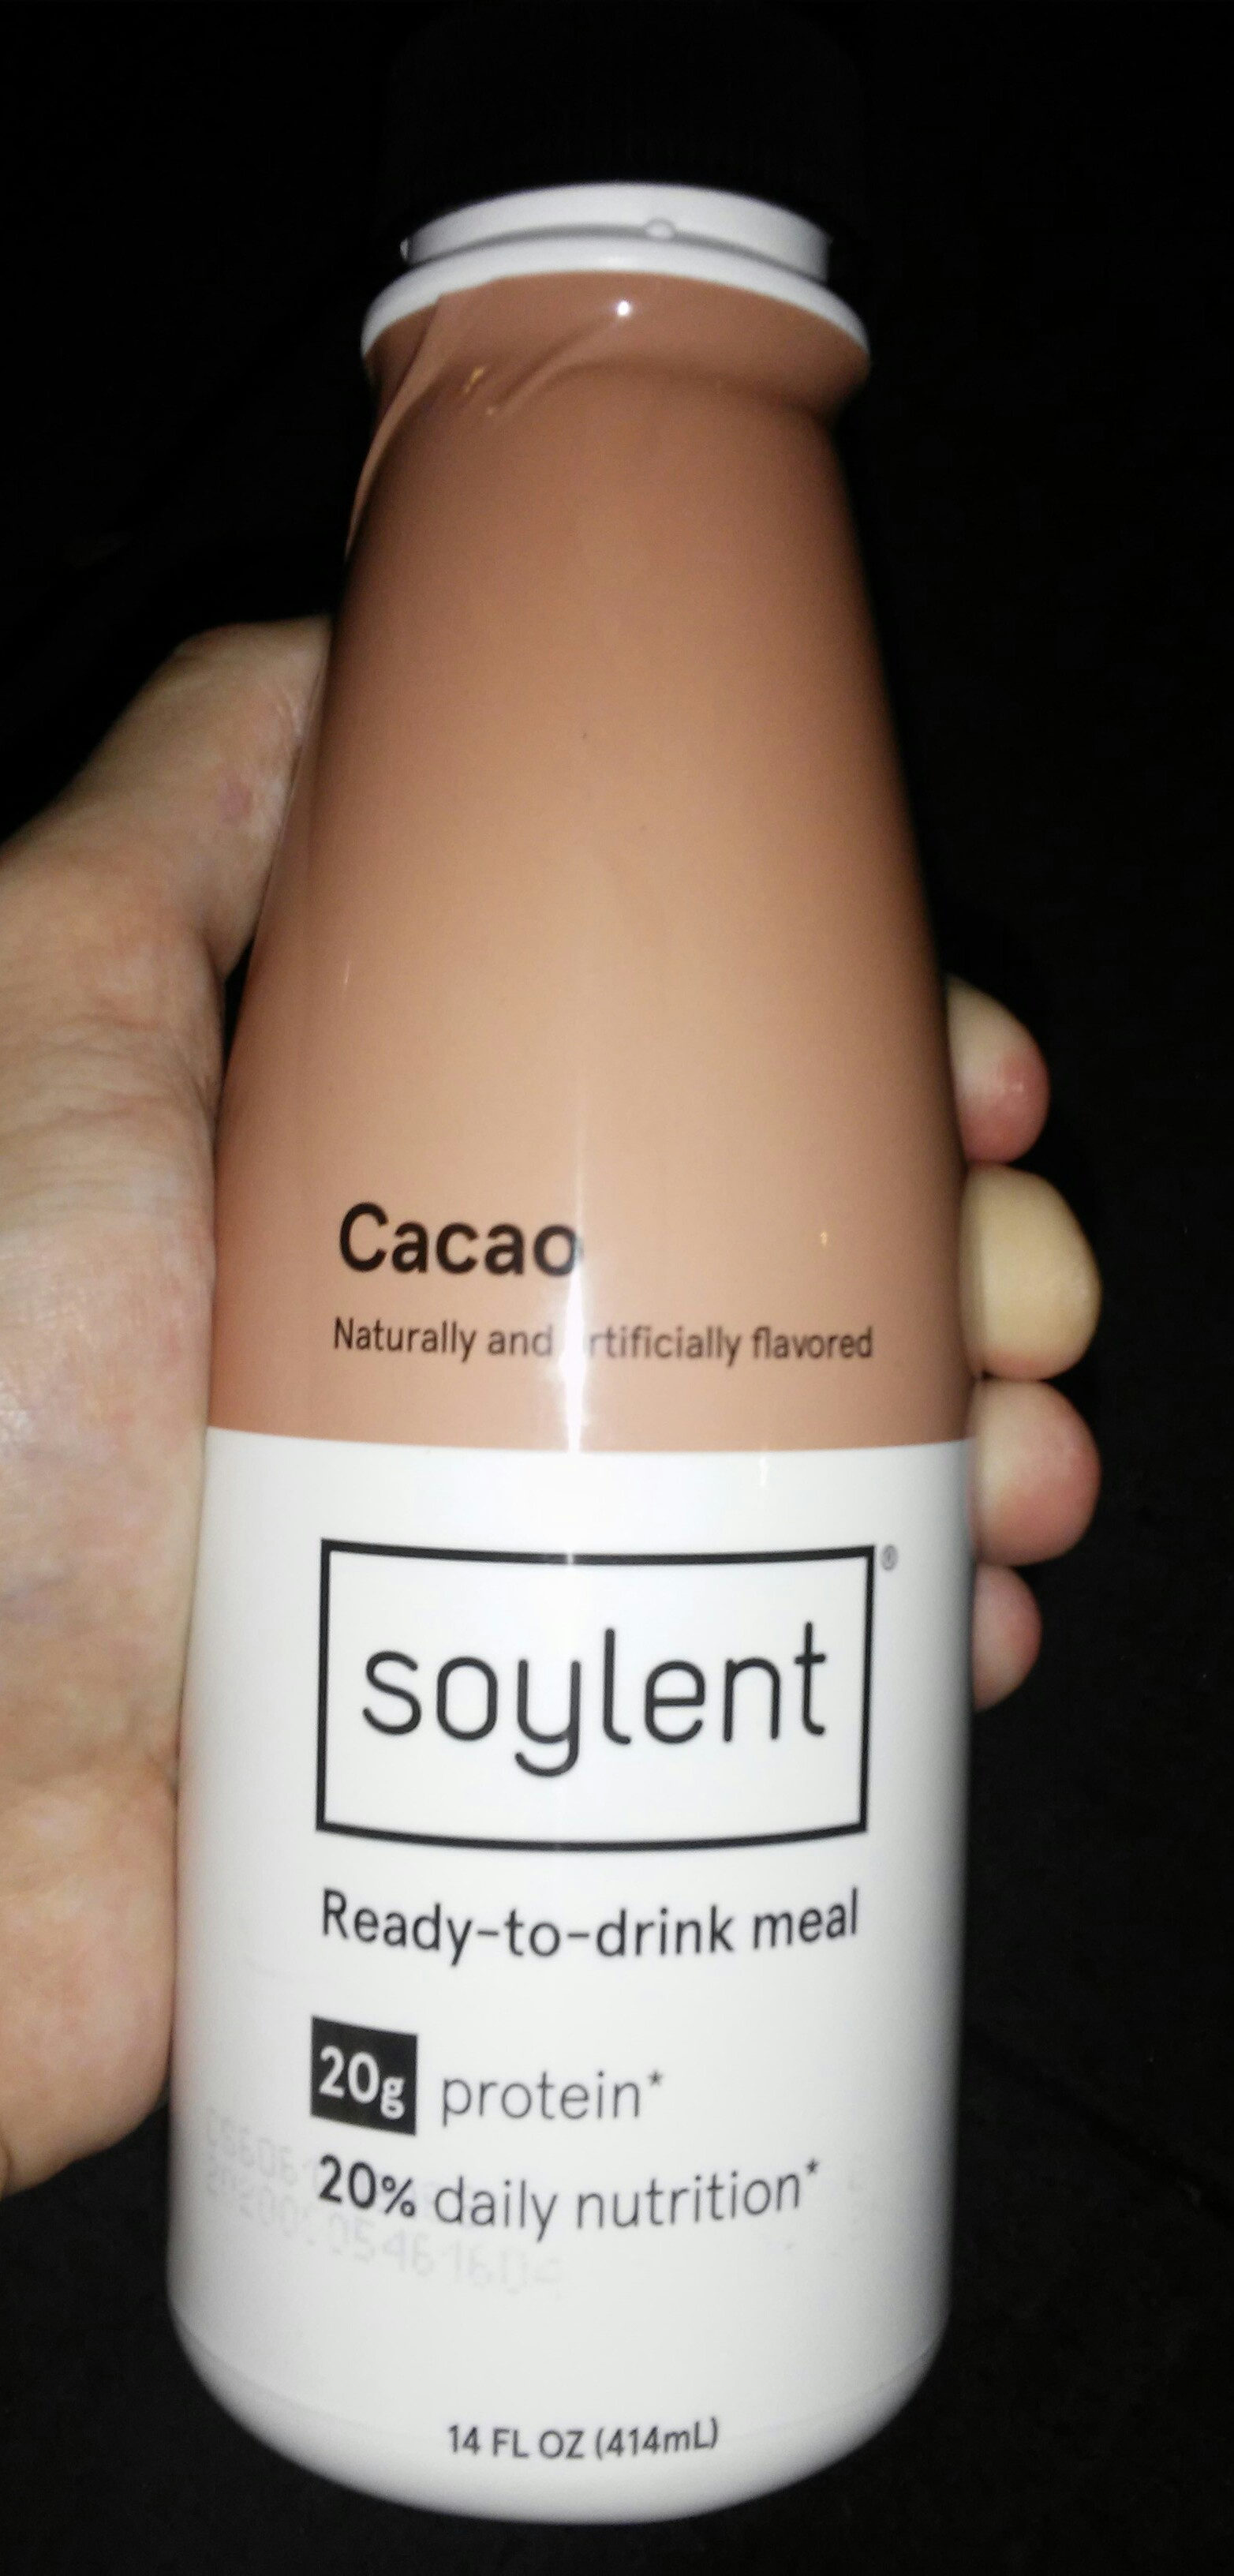 Soylent Cacao - Product